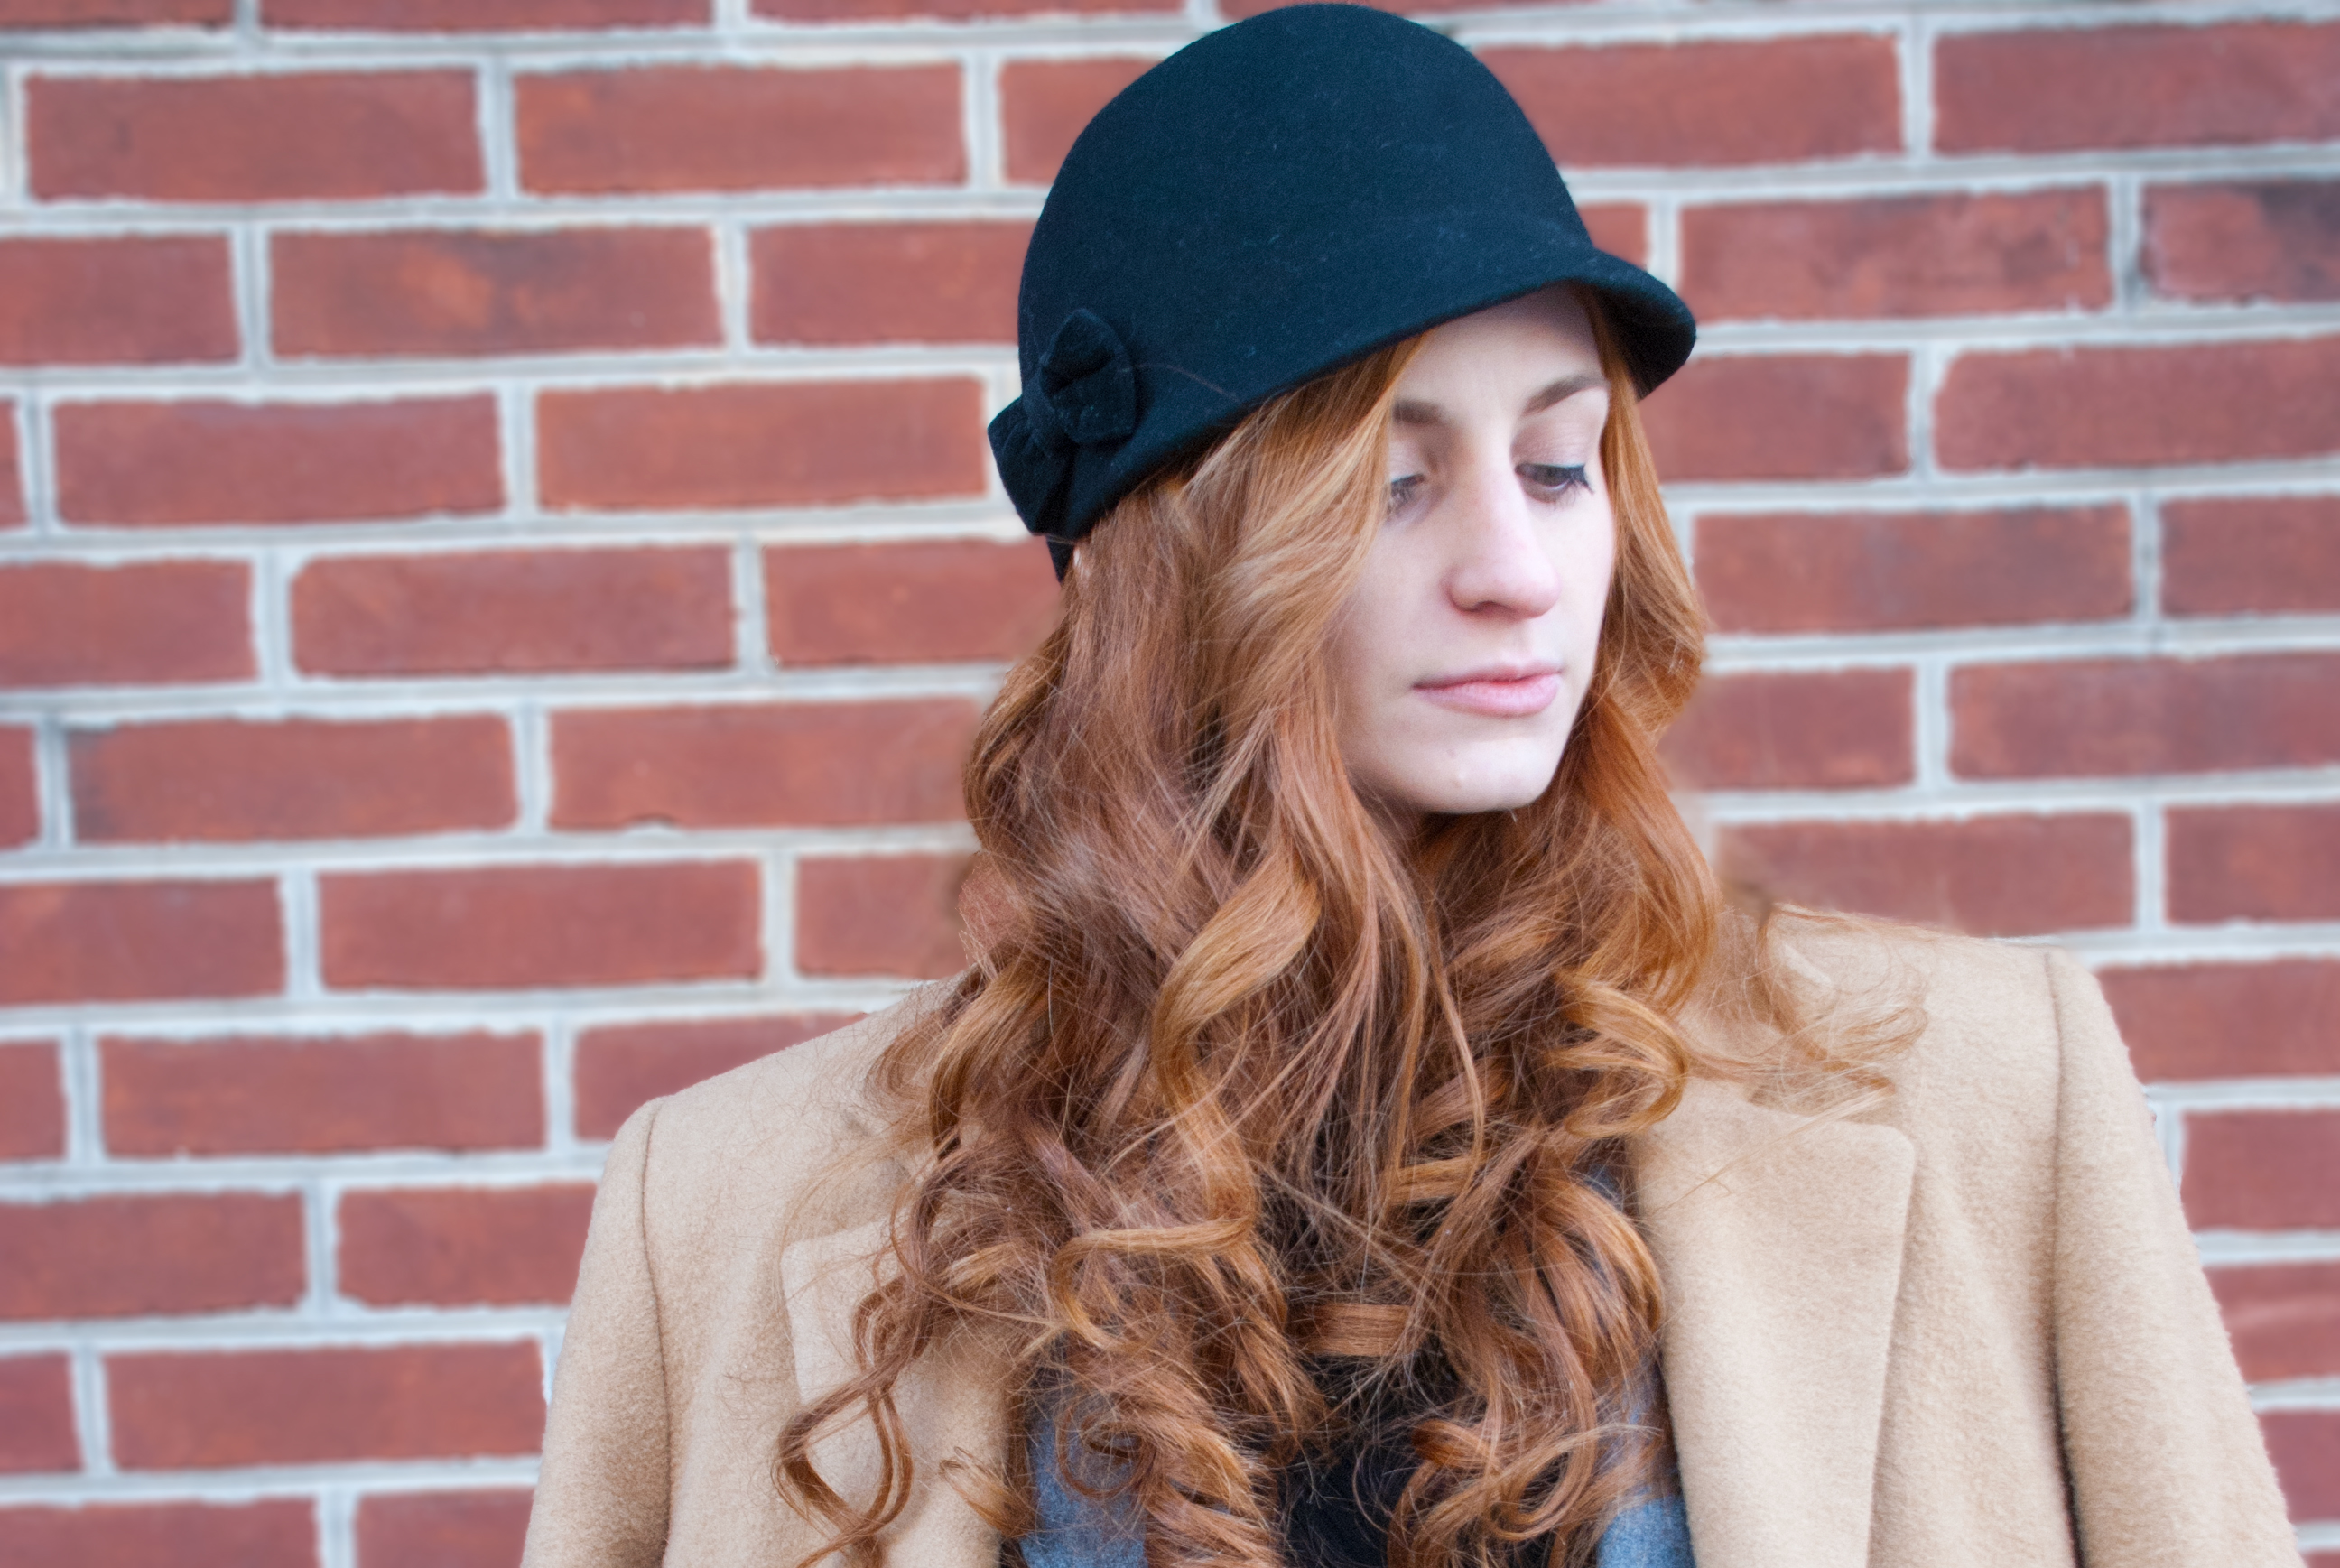 Redhead girl wearing black hat standing in front of a red brick wall